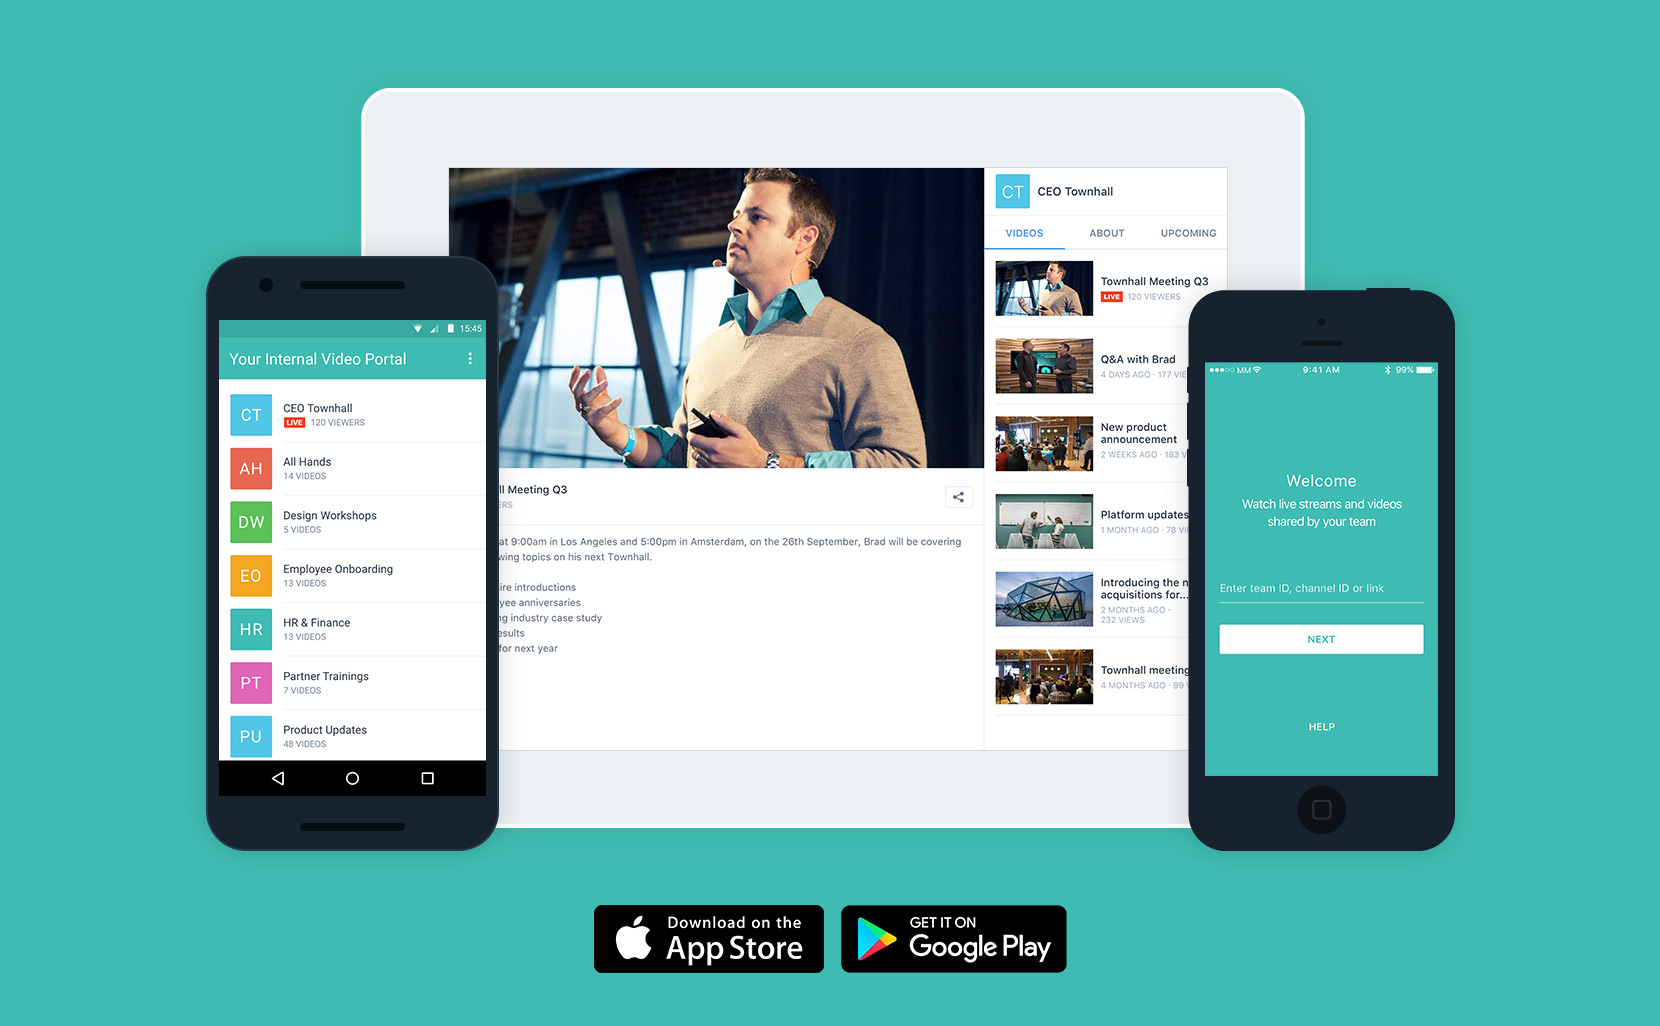 Secure Video App for Enterprise Streaming & Comms